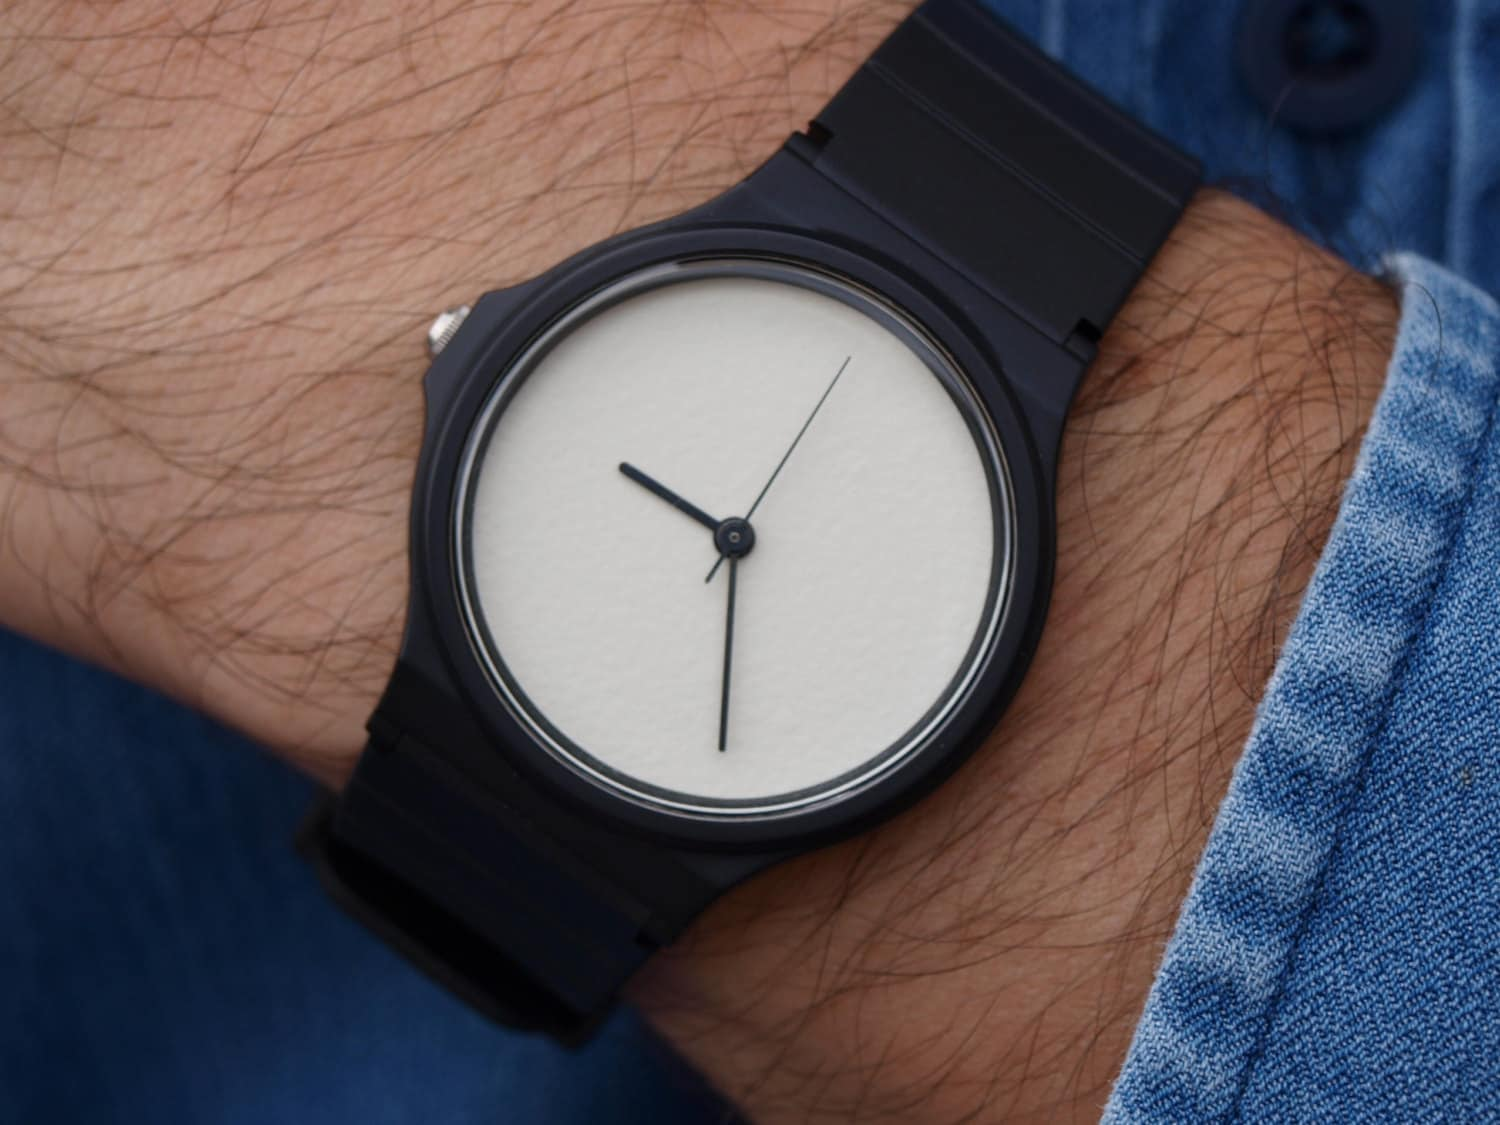 roundup design minimalistwatch watches minimalist simplicity for time updated milk a minimal fine